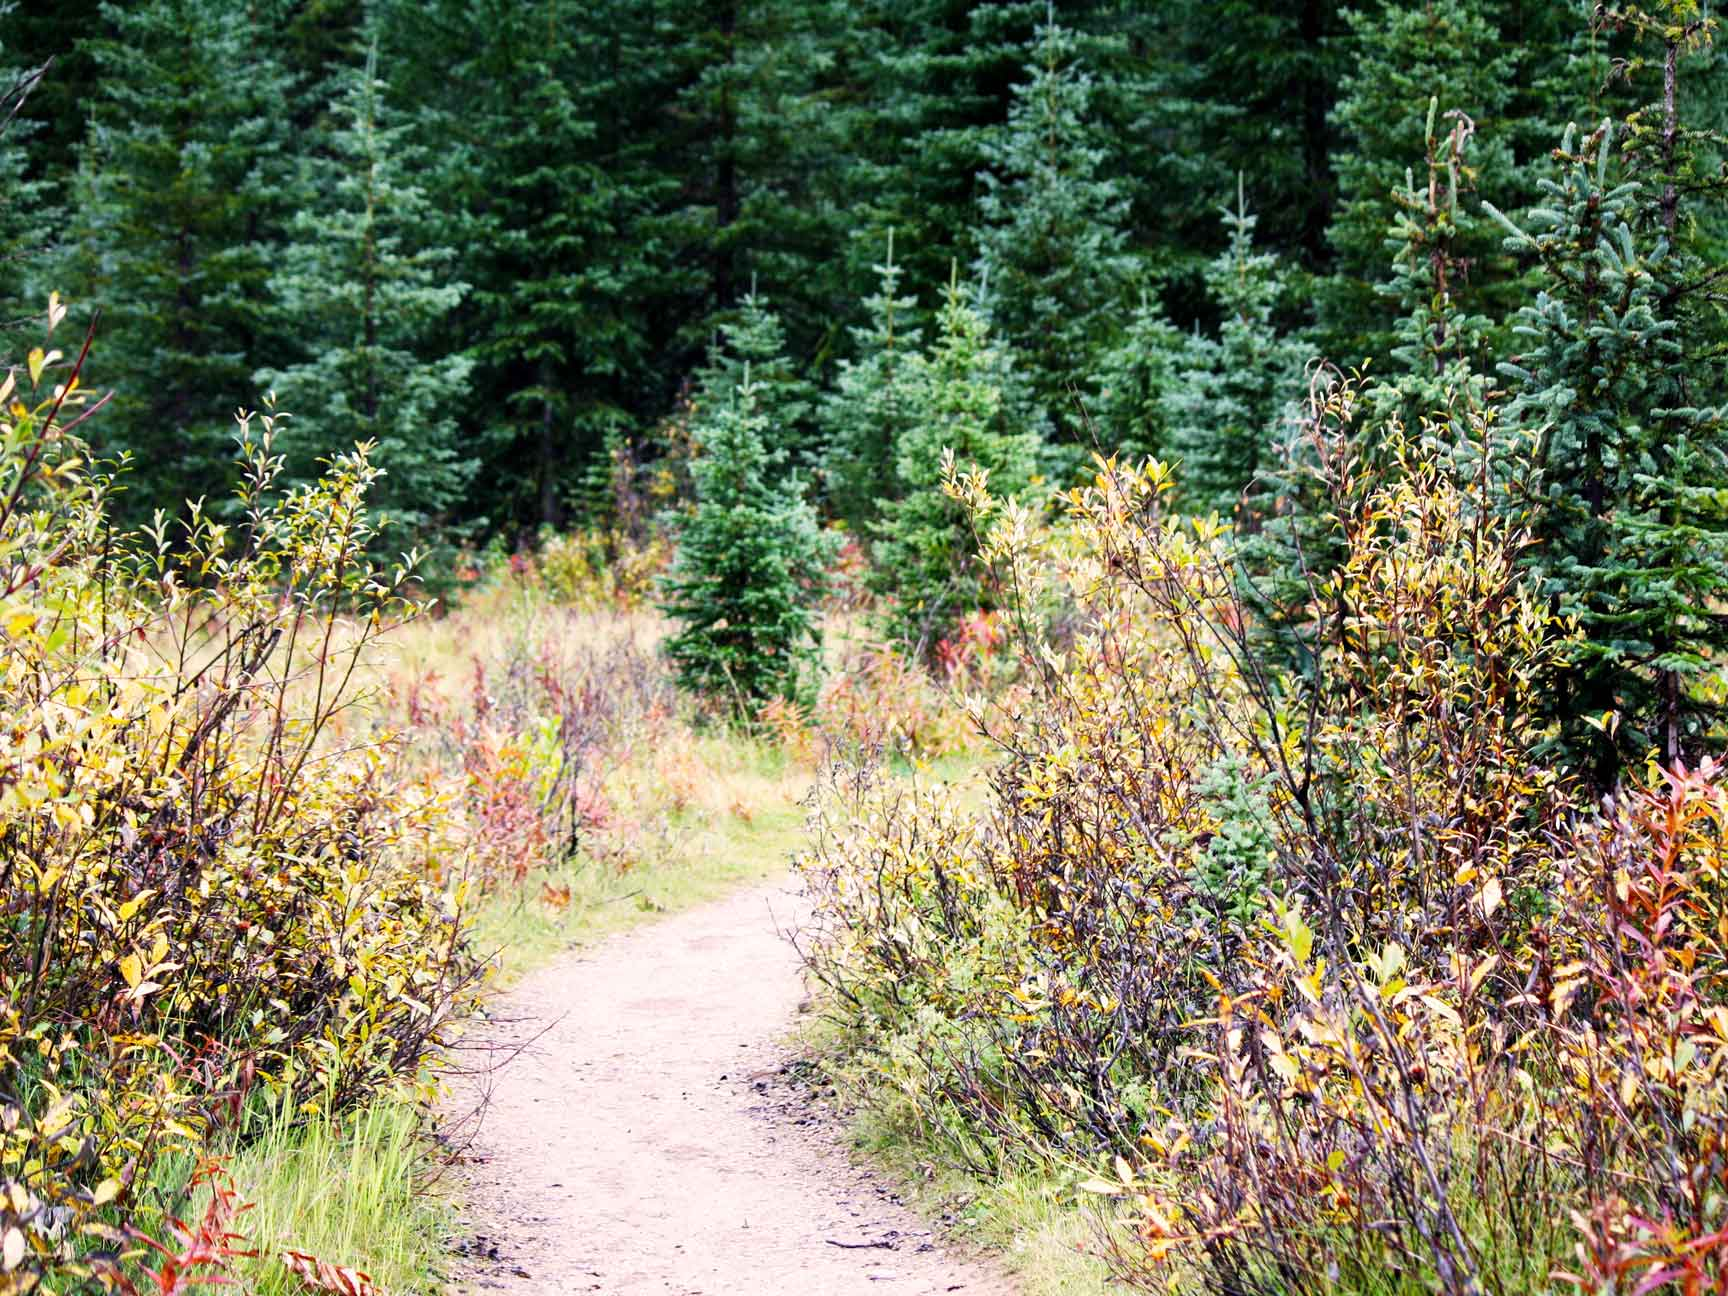 Guided hike with Laura from Self Propelled Adventures